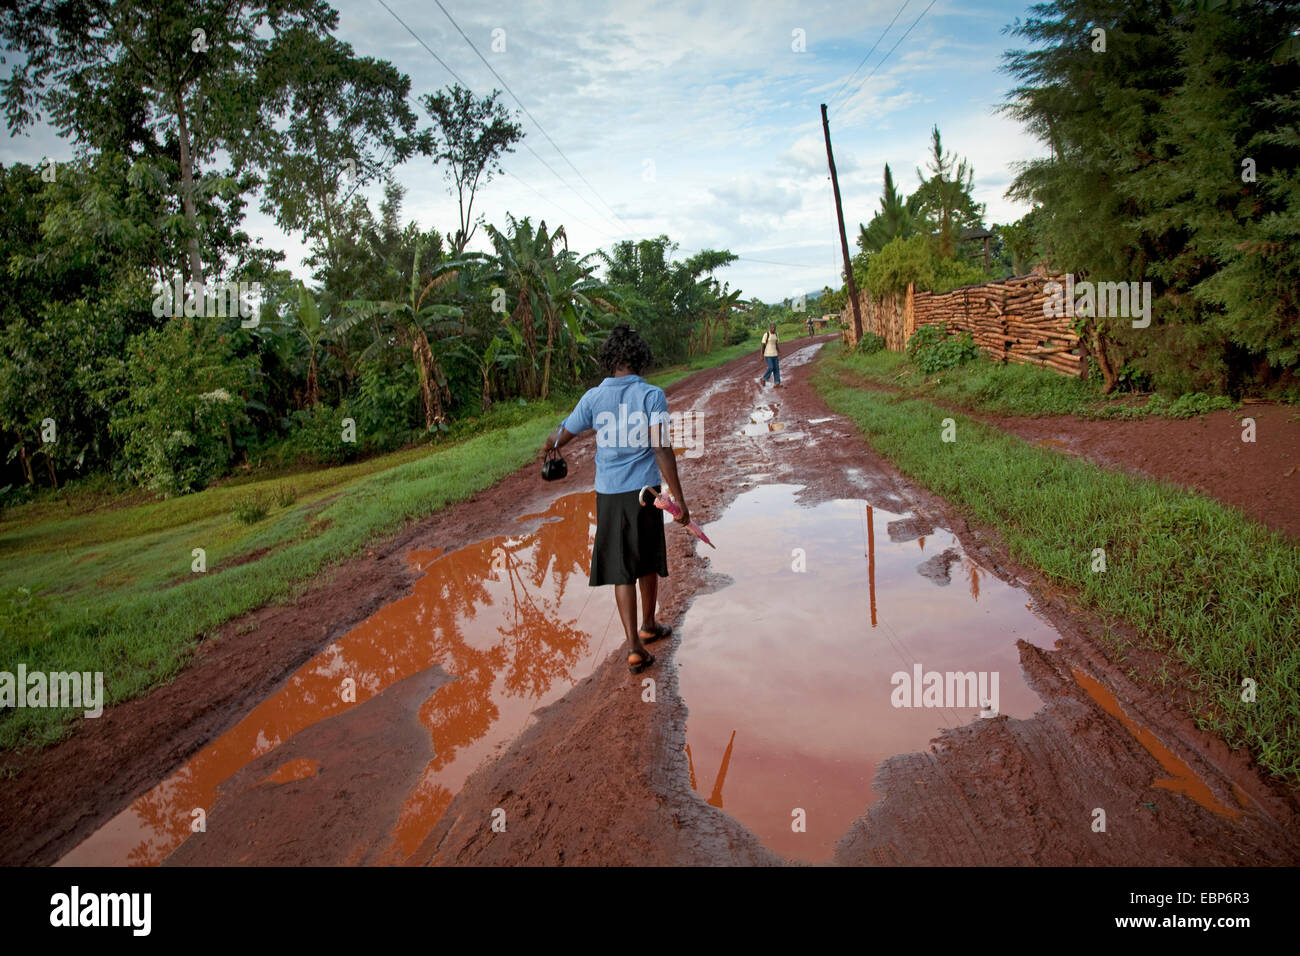 woman with umbrella and handbag is walking on a path that is soaked in water after a recent rainfall, Uganda, Jinja Stock Photo